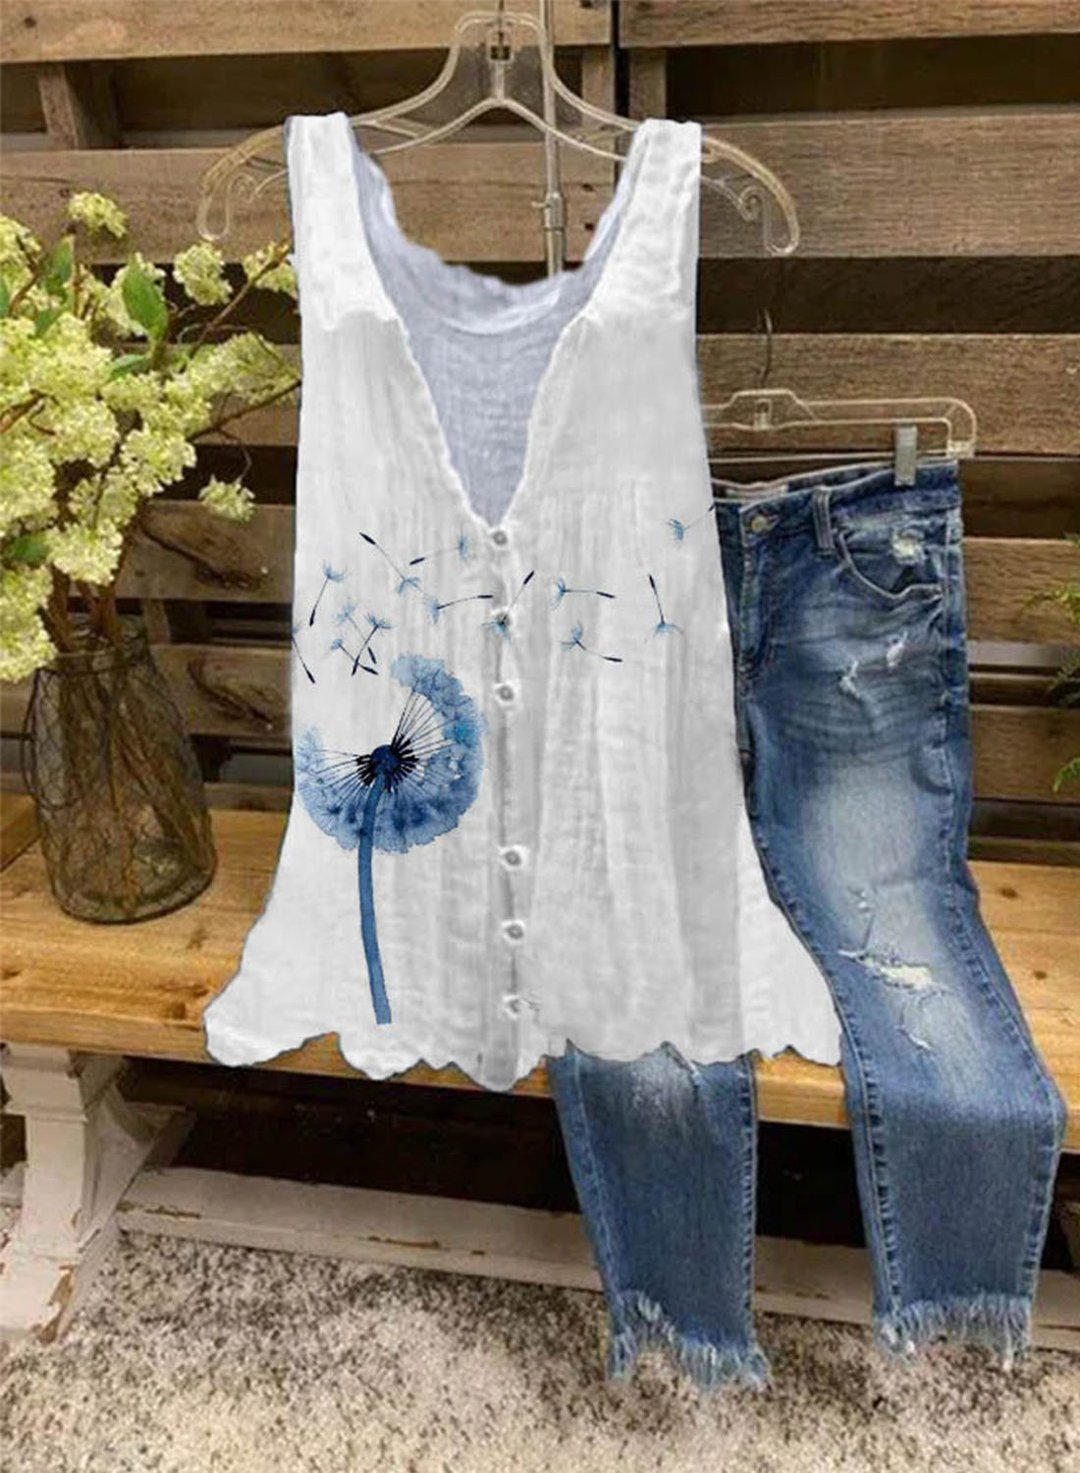 White Women's Tank Tops Dandelion Button-up Tunic Tank Tops LC2562103-1